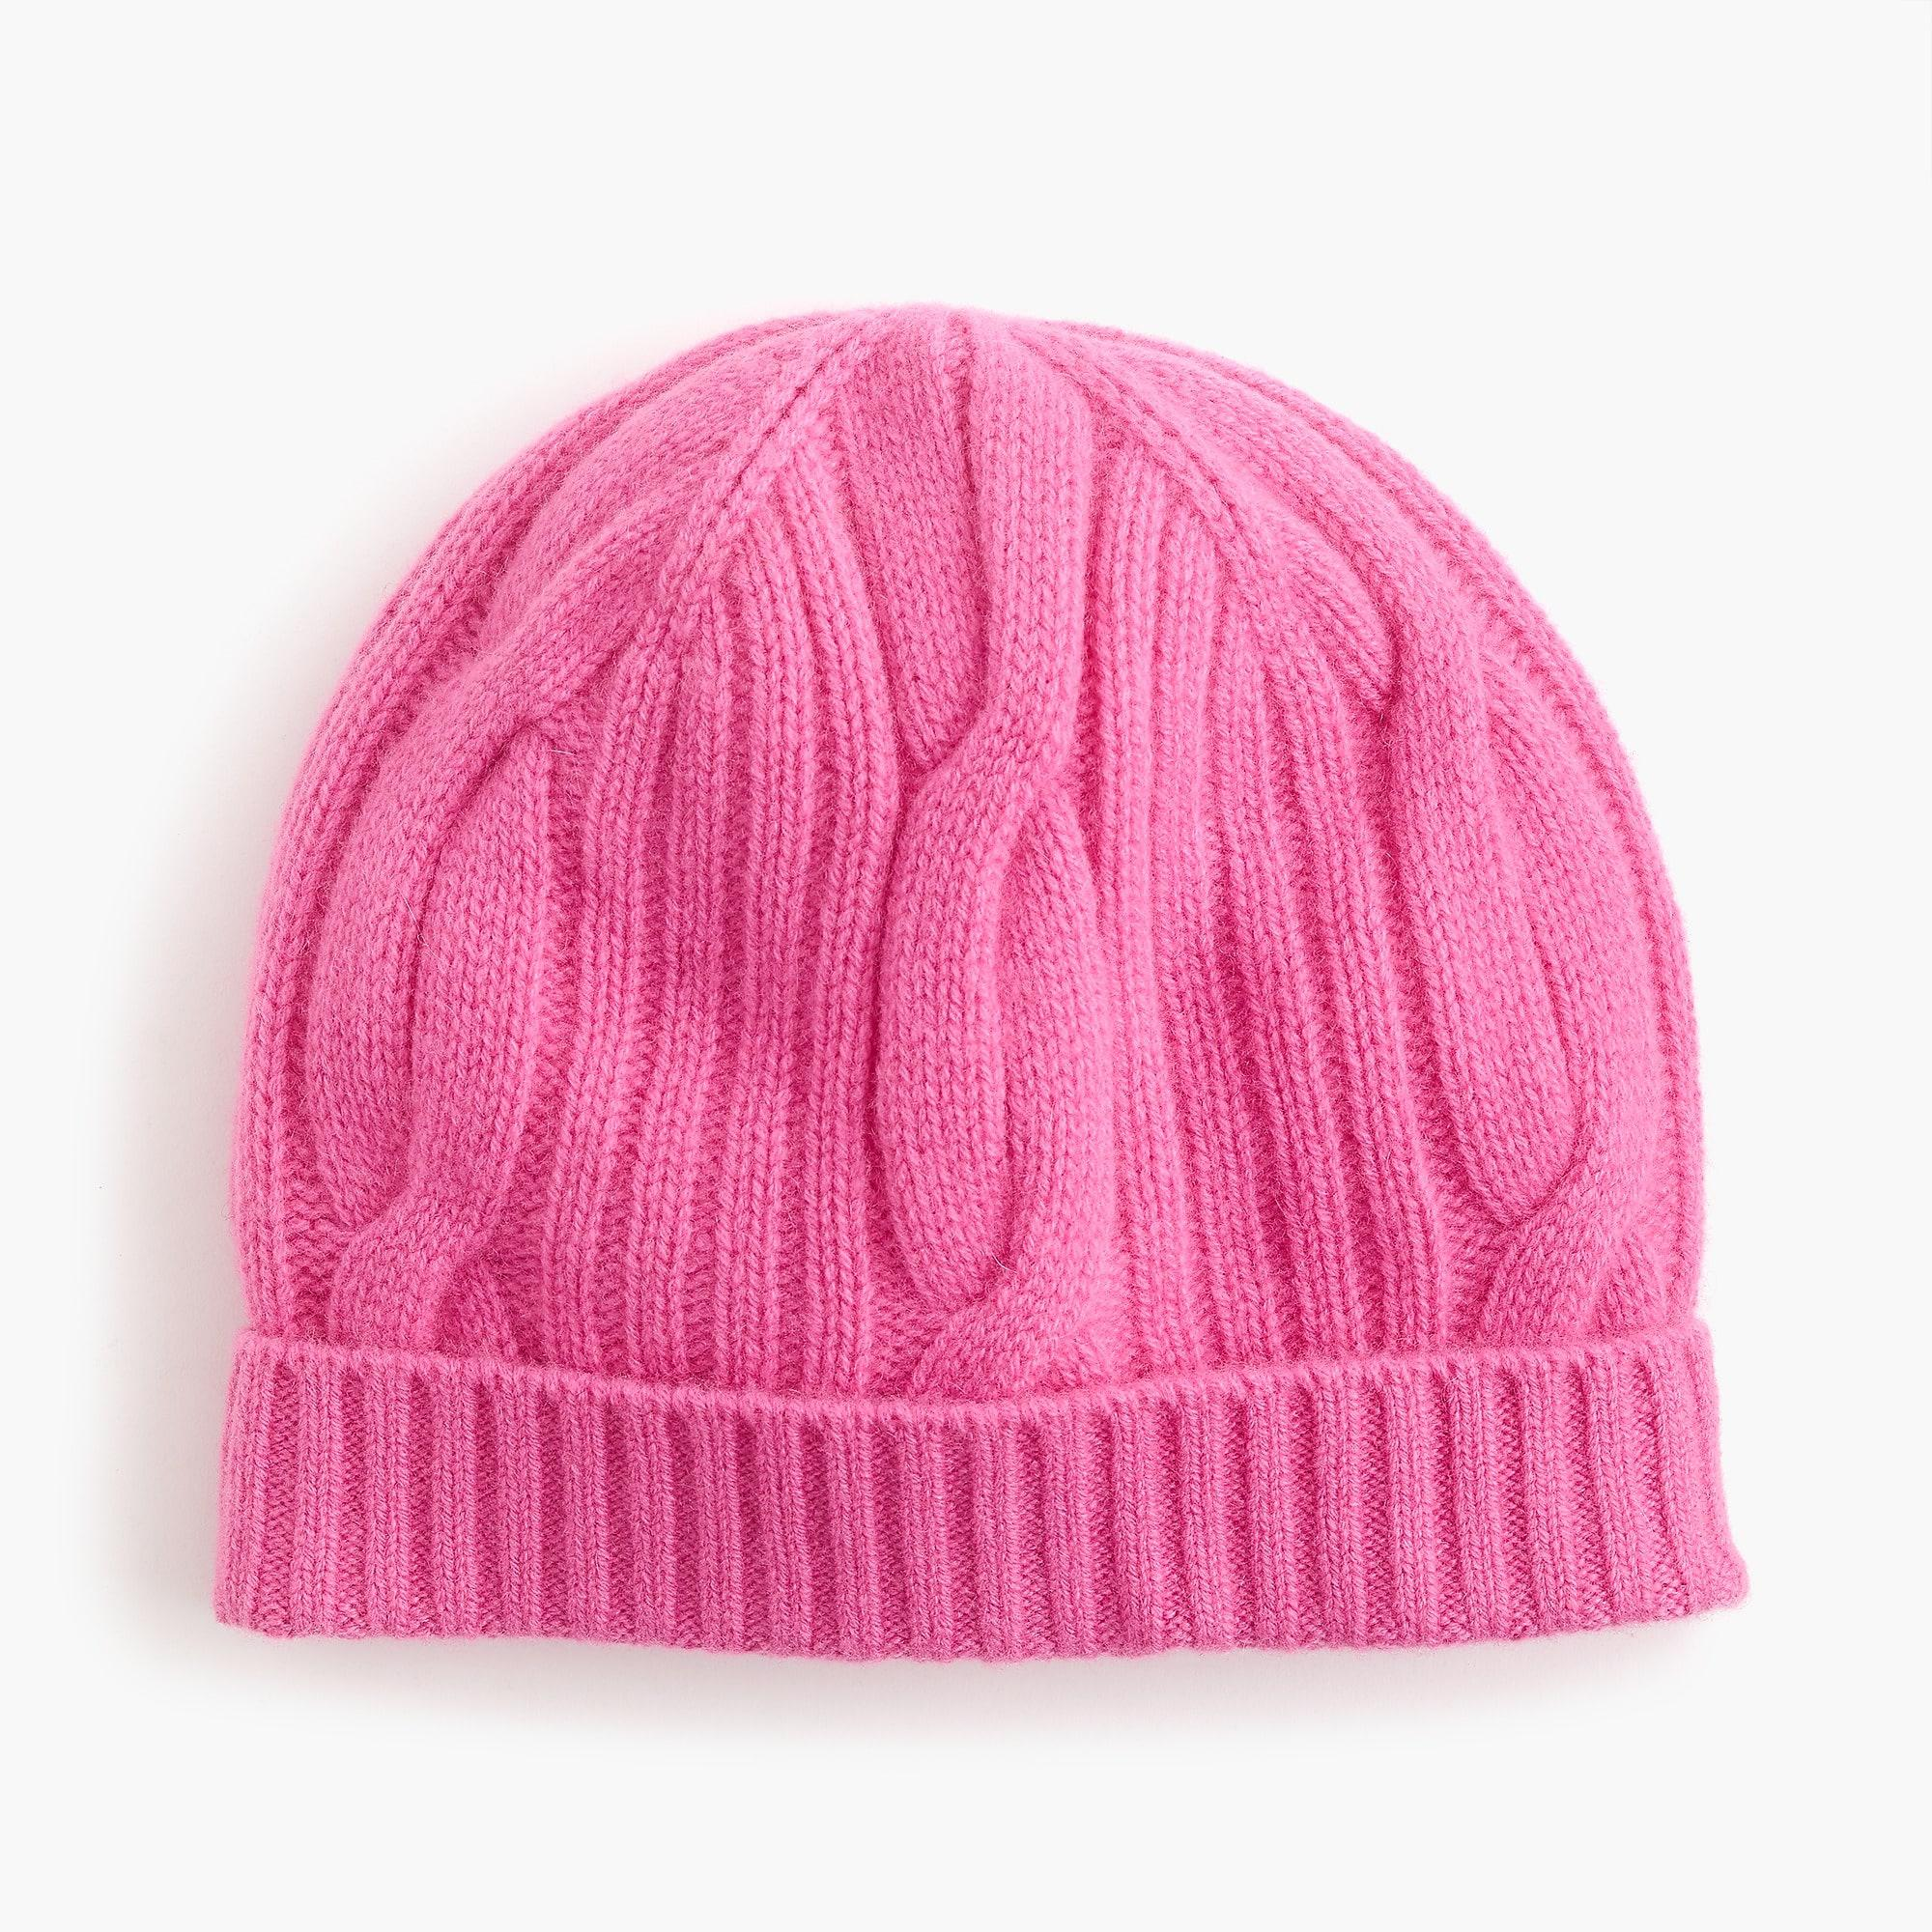 27c85fe5a7393 Lyst - J.Crew Ribbed Cable-knit Beanie In Everyday Cashmere in Pink